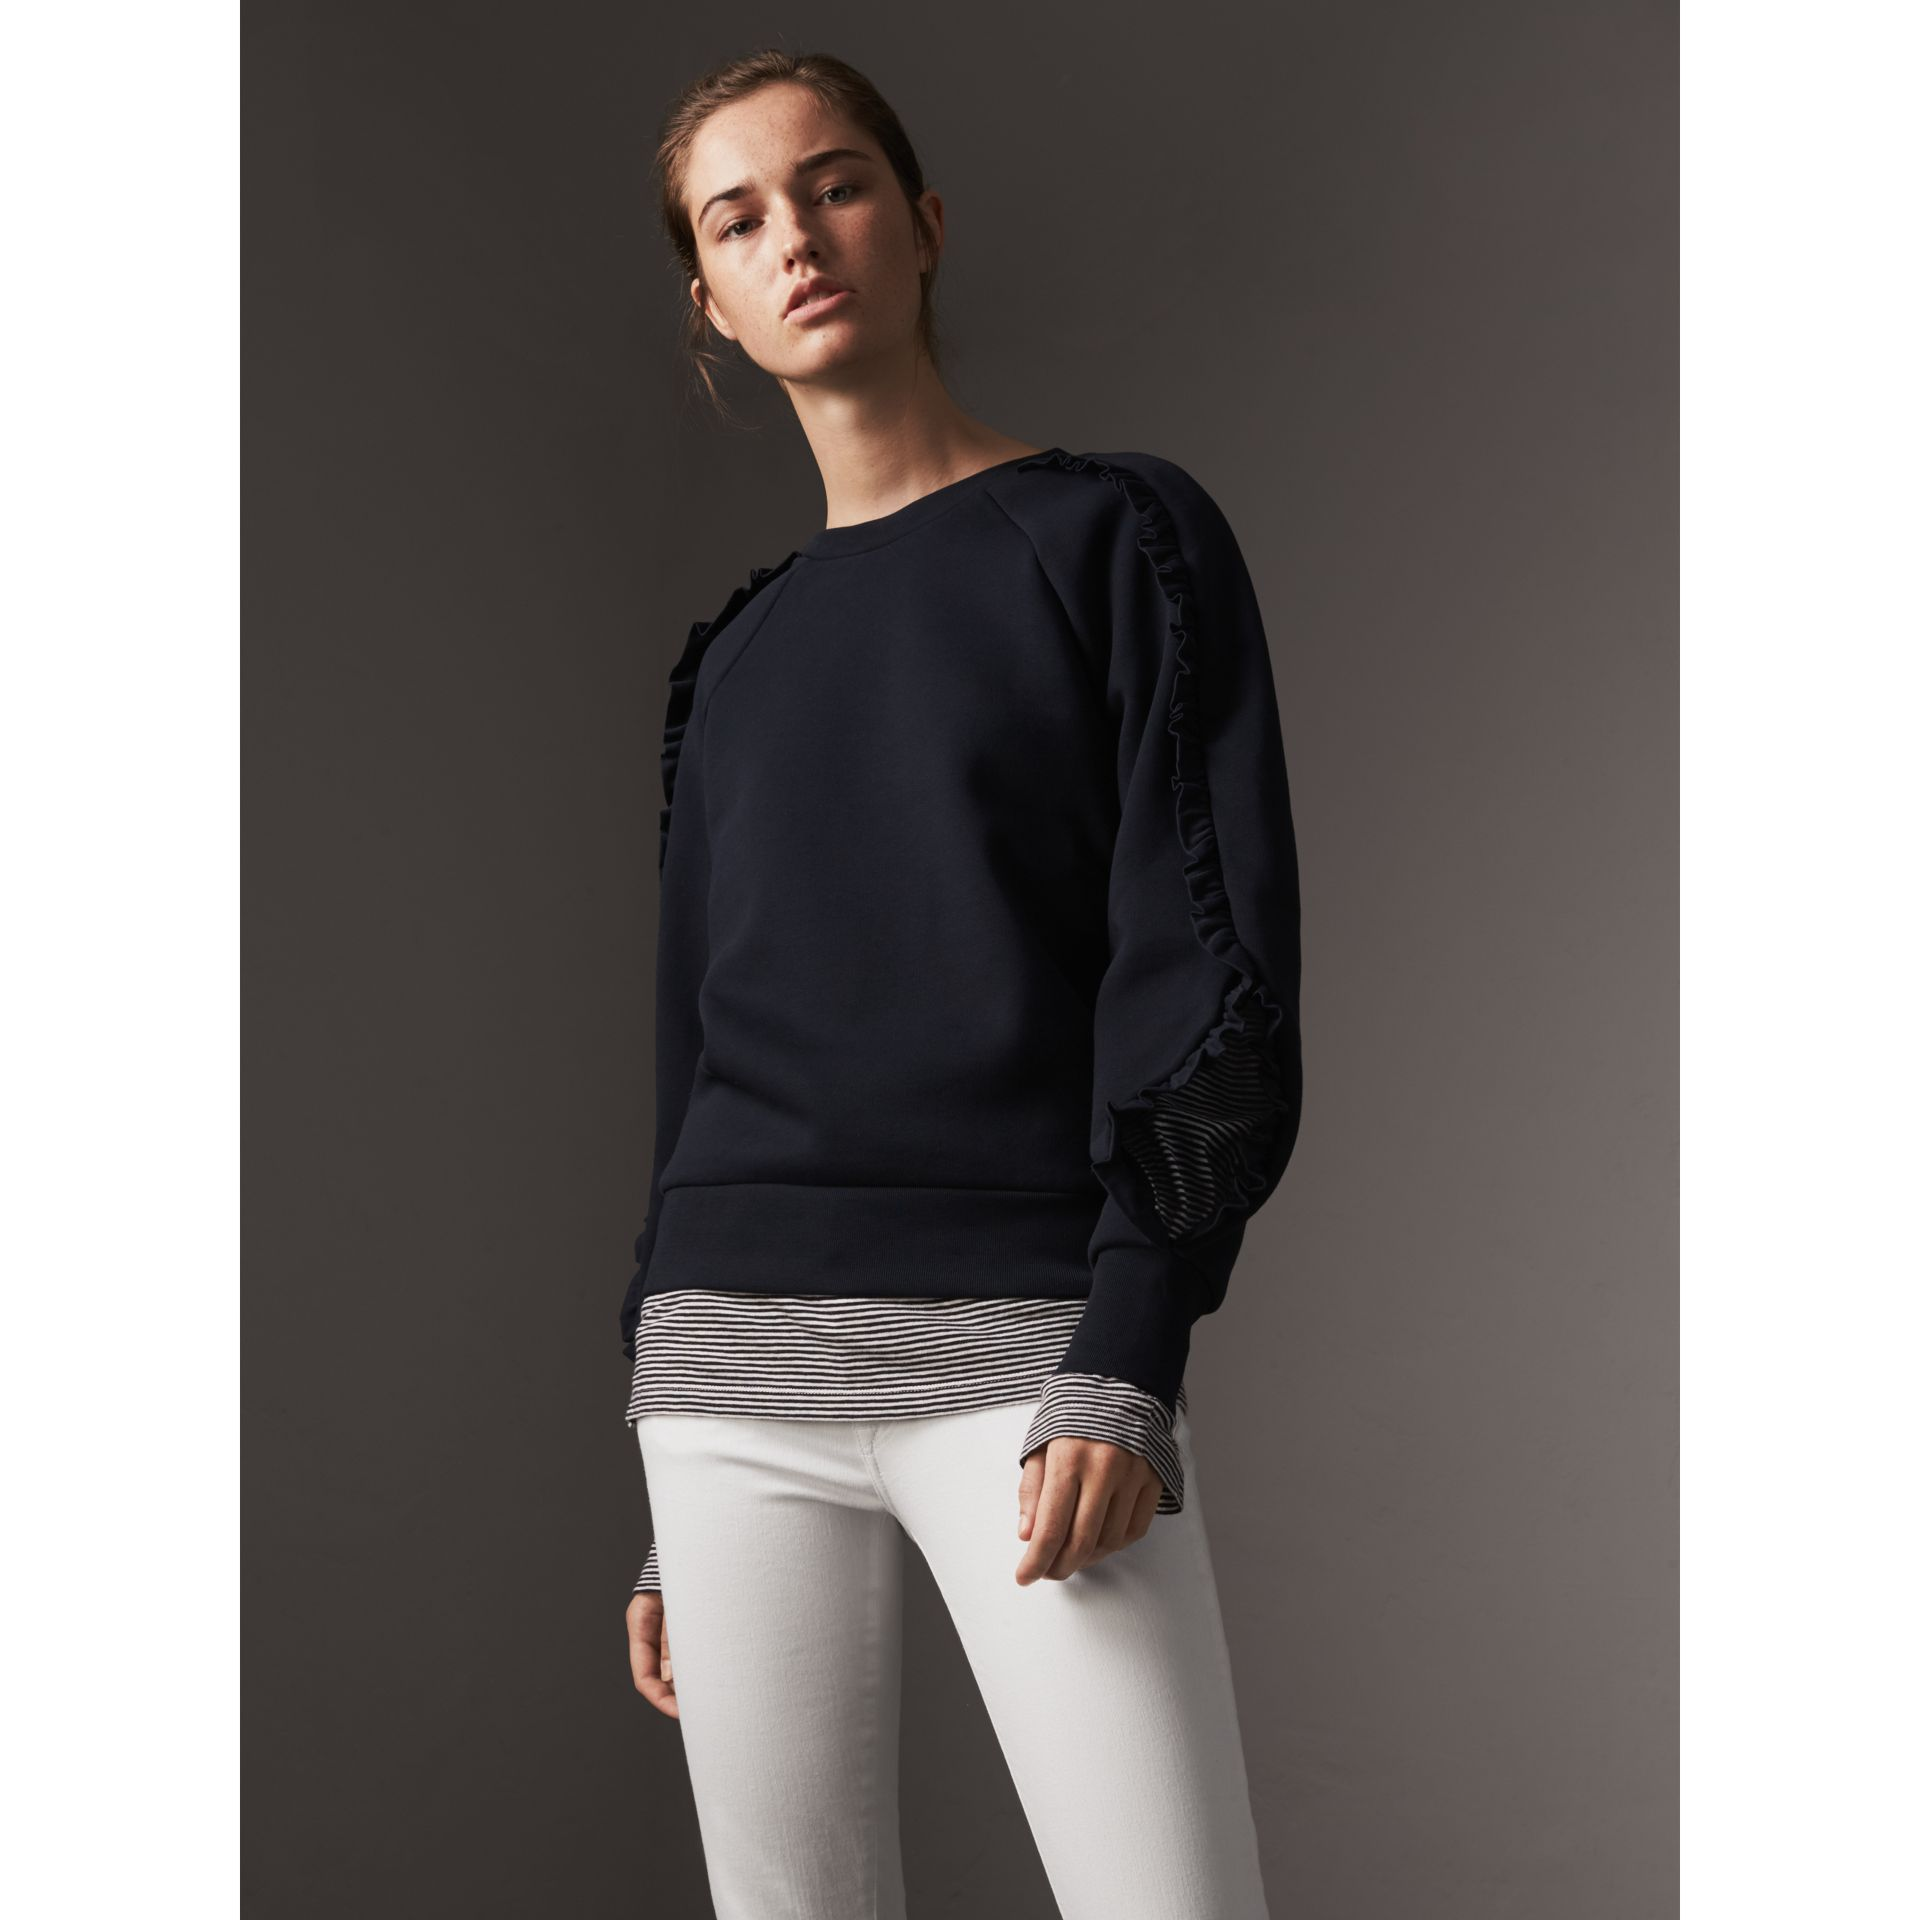 Ruffle-sleeve Sweatshirt in Navy - Women | Burberry United Kingdom - gallery image 1